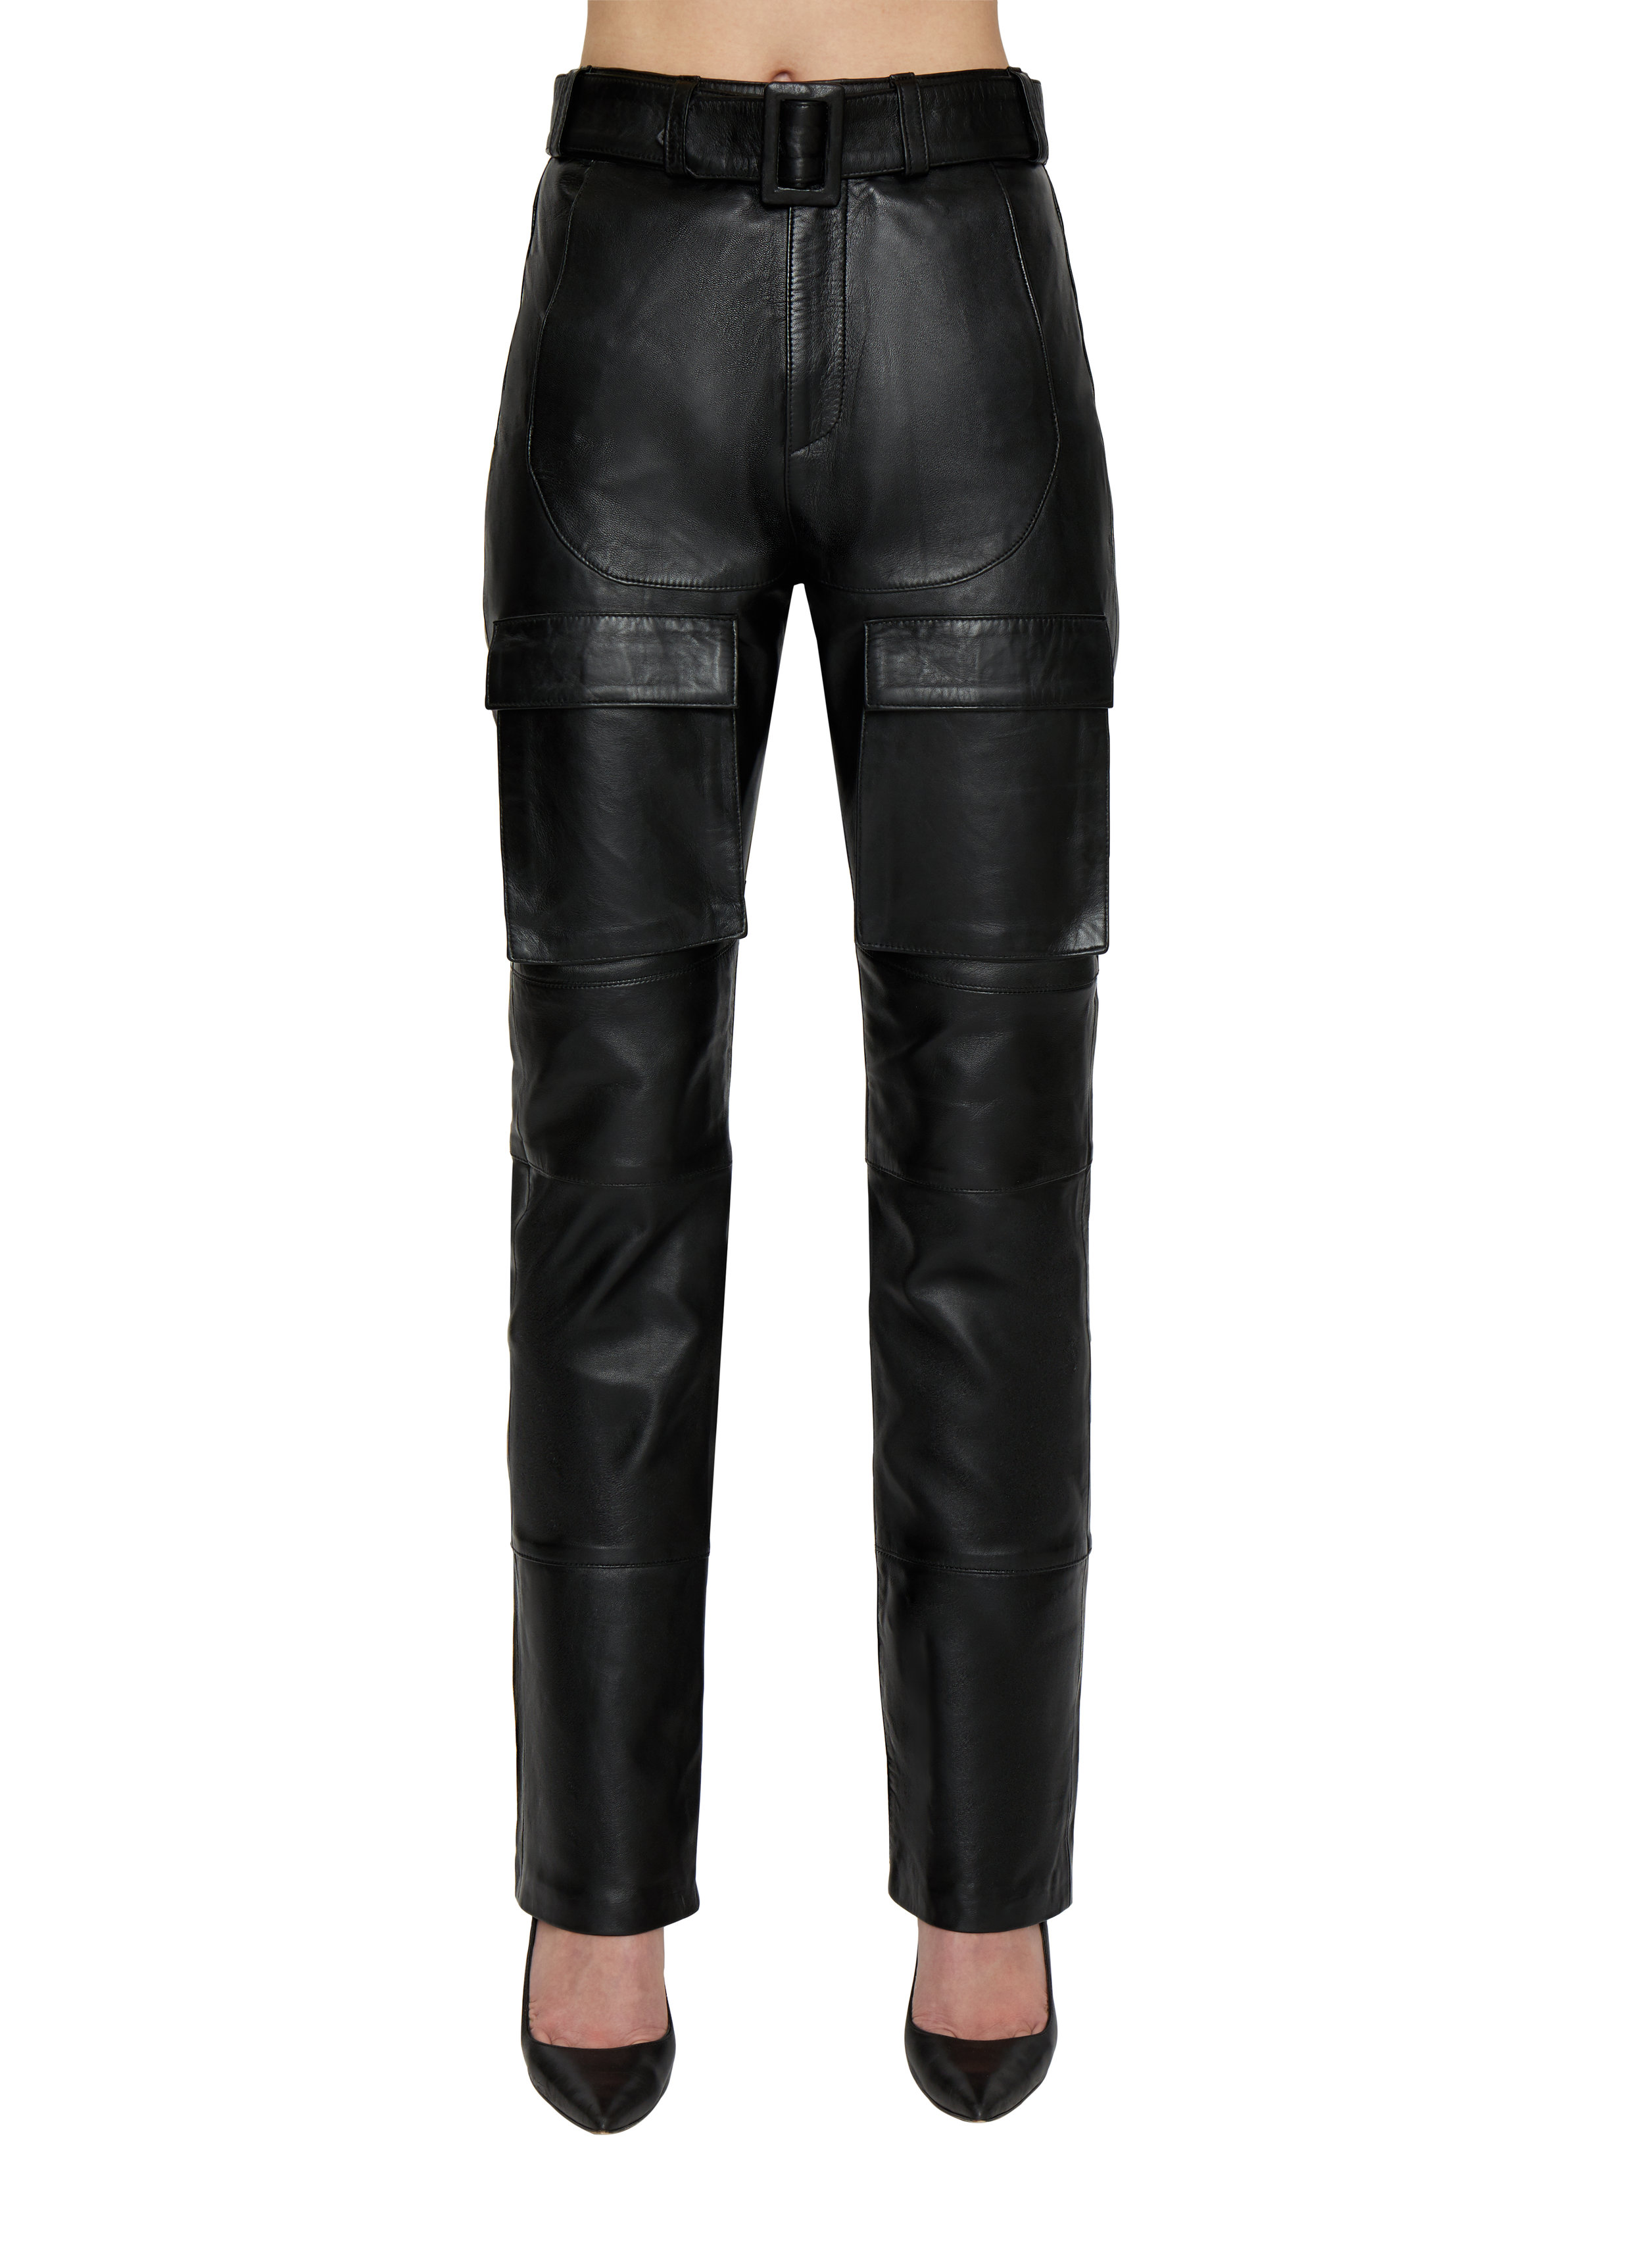 BELTED LEATHER CARGO PANTS by Danielle Guizio, available on danielleguiziony.com for $890 Kylie Jenner Pants SIMILAR PRODUCT